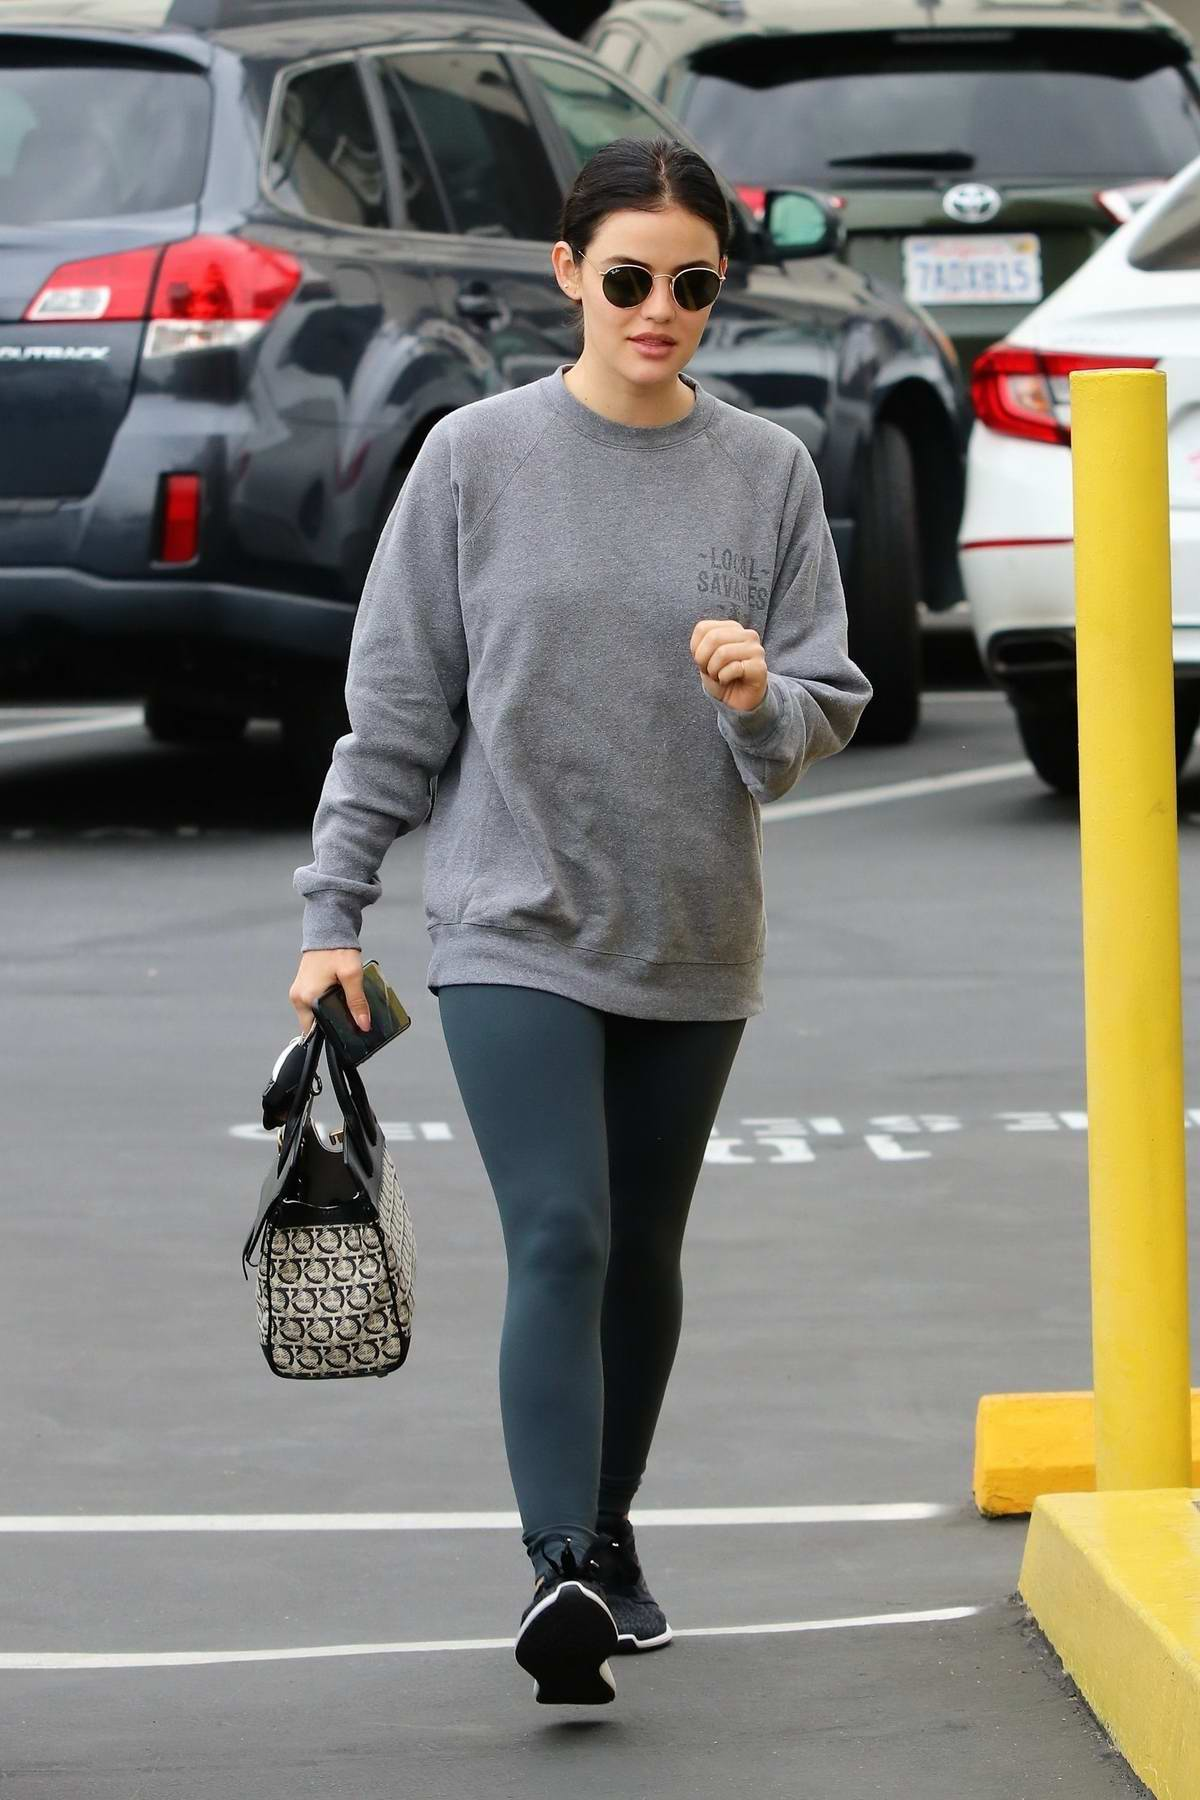 Lucy Hale keeps it casual with a sweatshirt and leggings while visiting a Dentist's Office in Toluca Lake, California